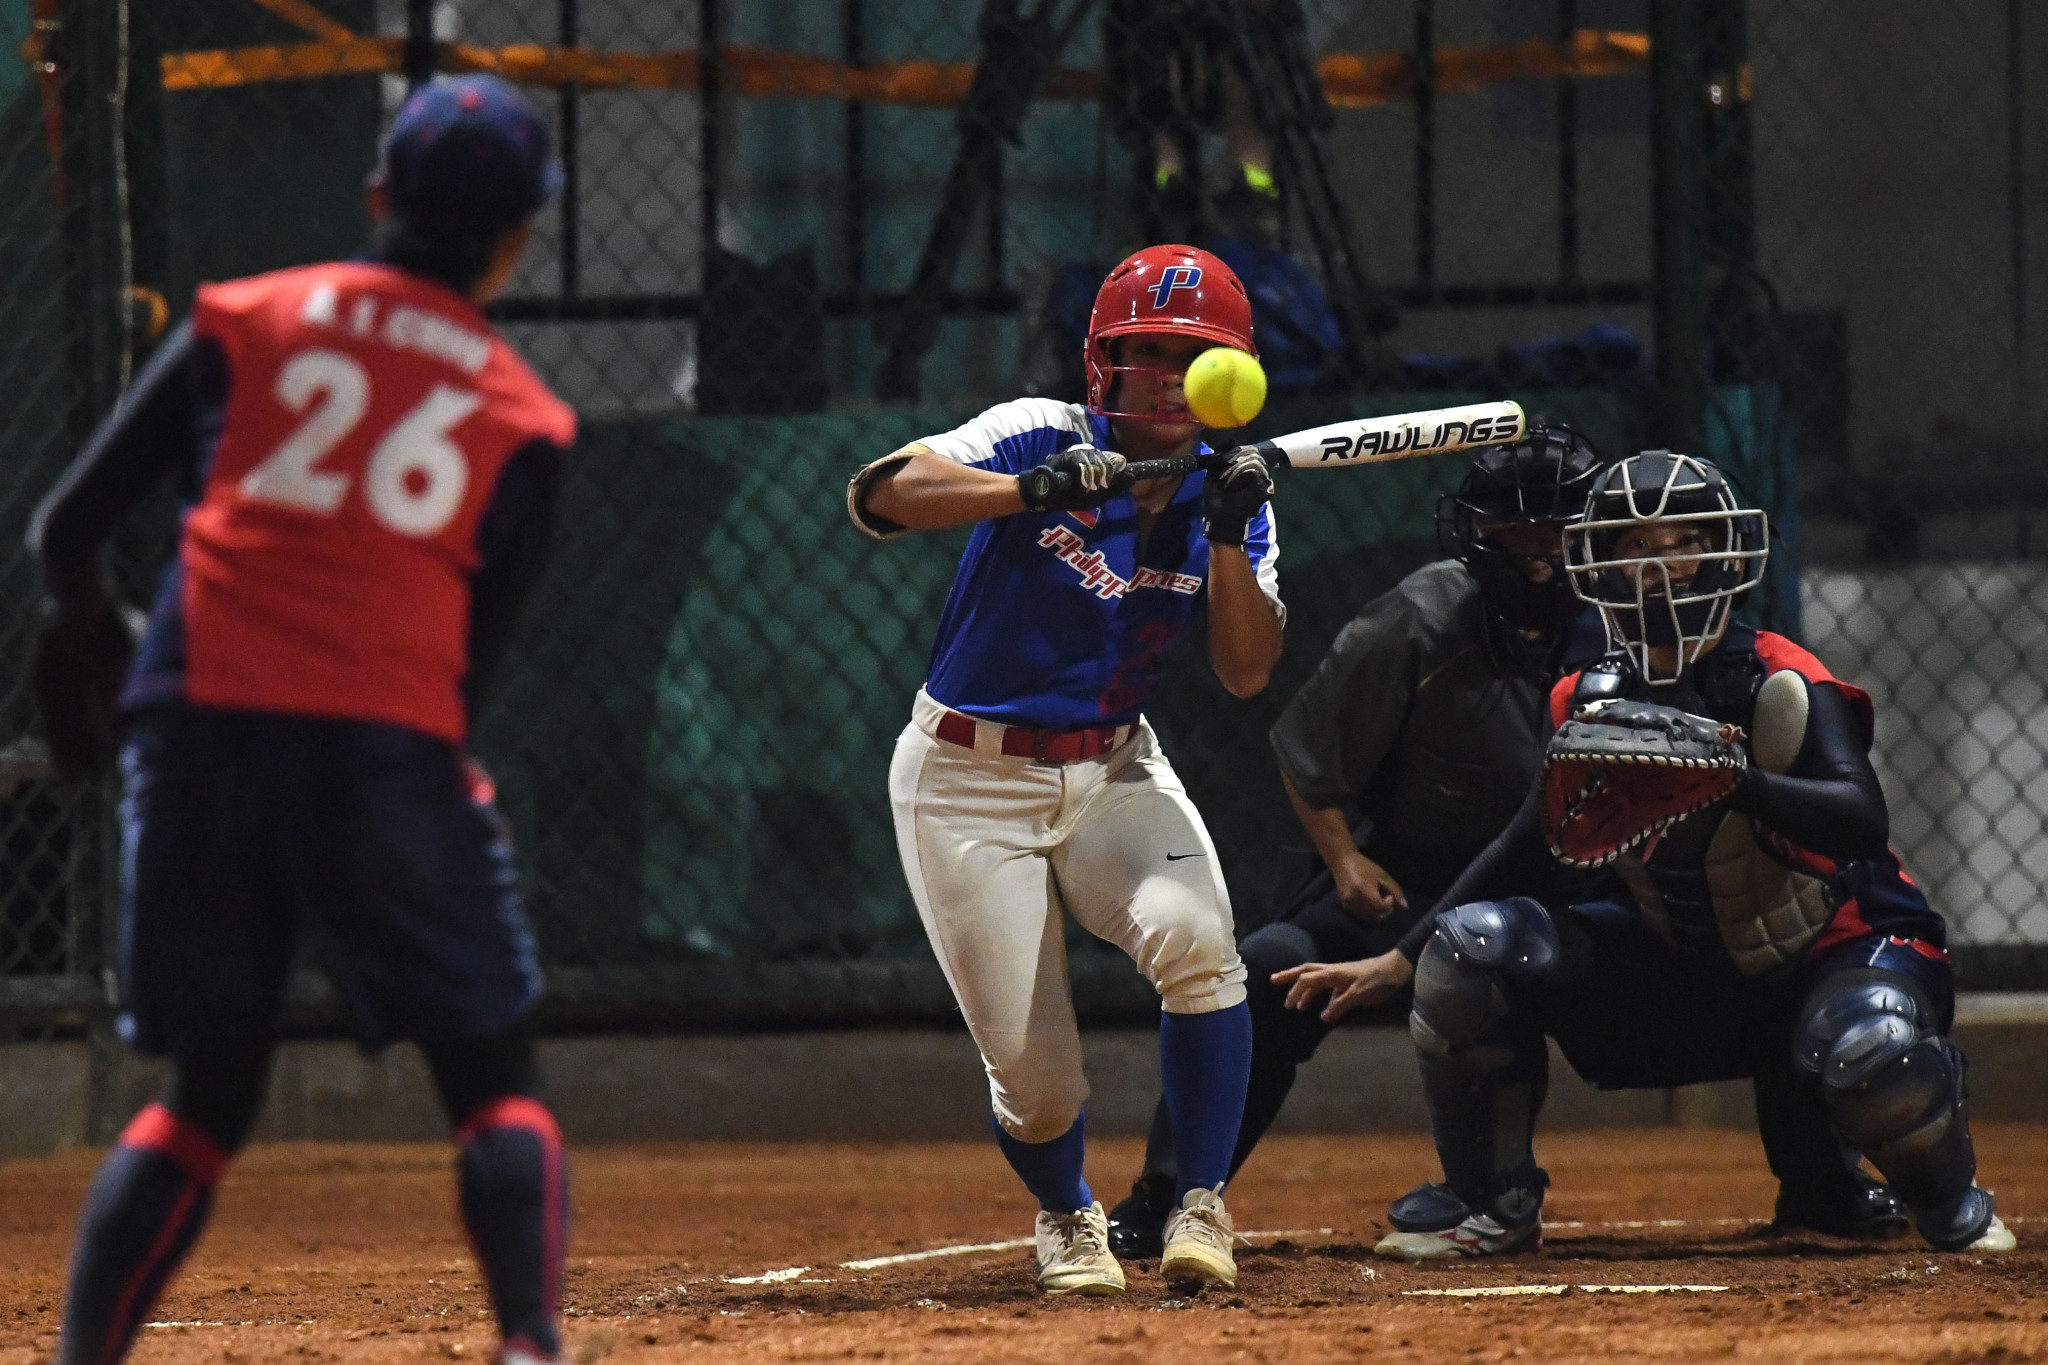 The Philippines softball team finished fourth at the 2018 Asian Games ©Getty Images